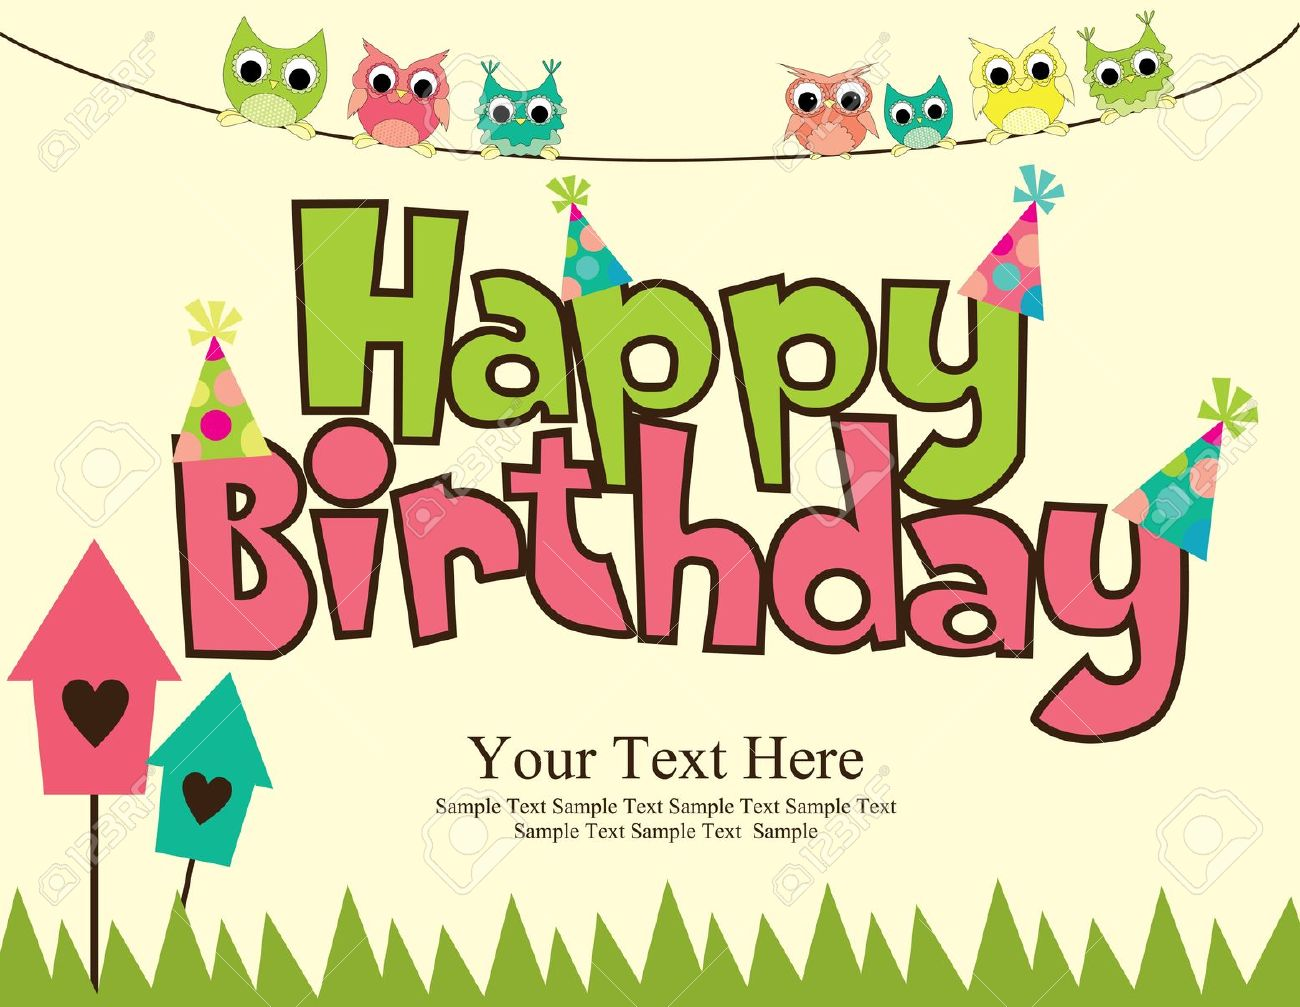 bday card designs ; birthday-cards-design-happy-birthdays-vector-illustraton-Illustration-colorful-owls-your-text-here-sample-messages-grass-pokadot-hat